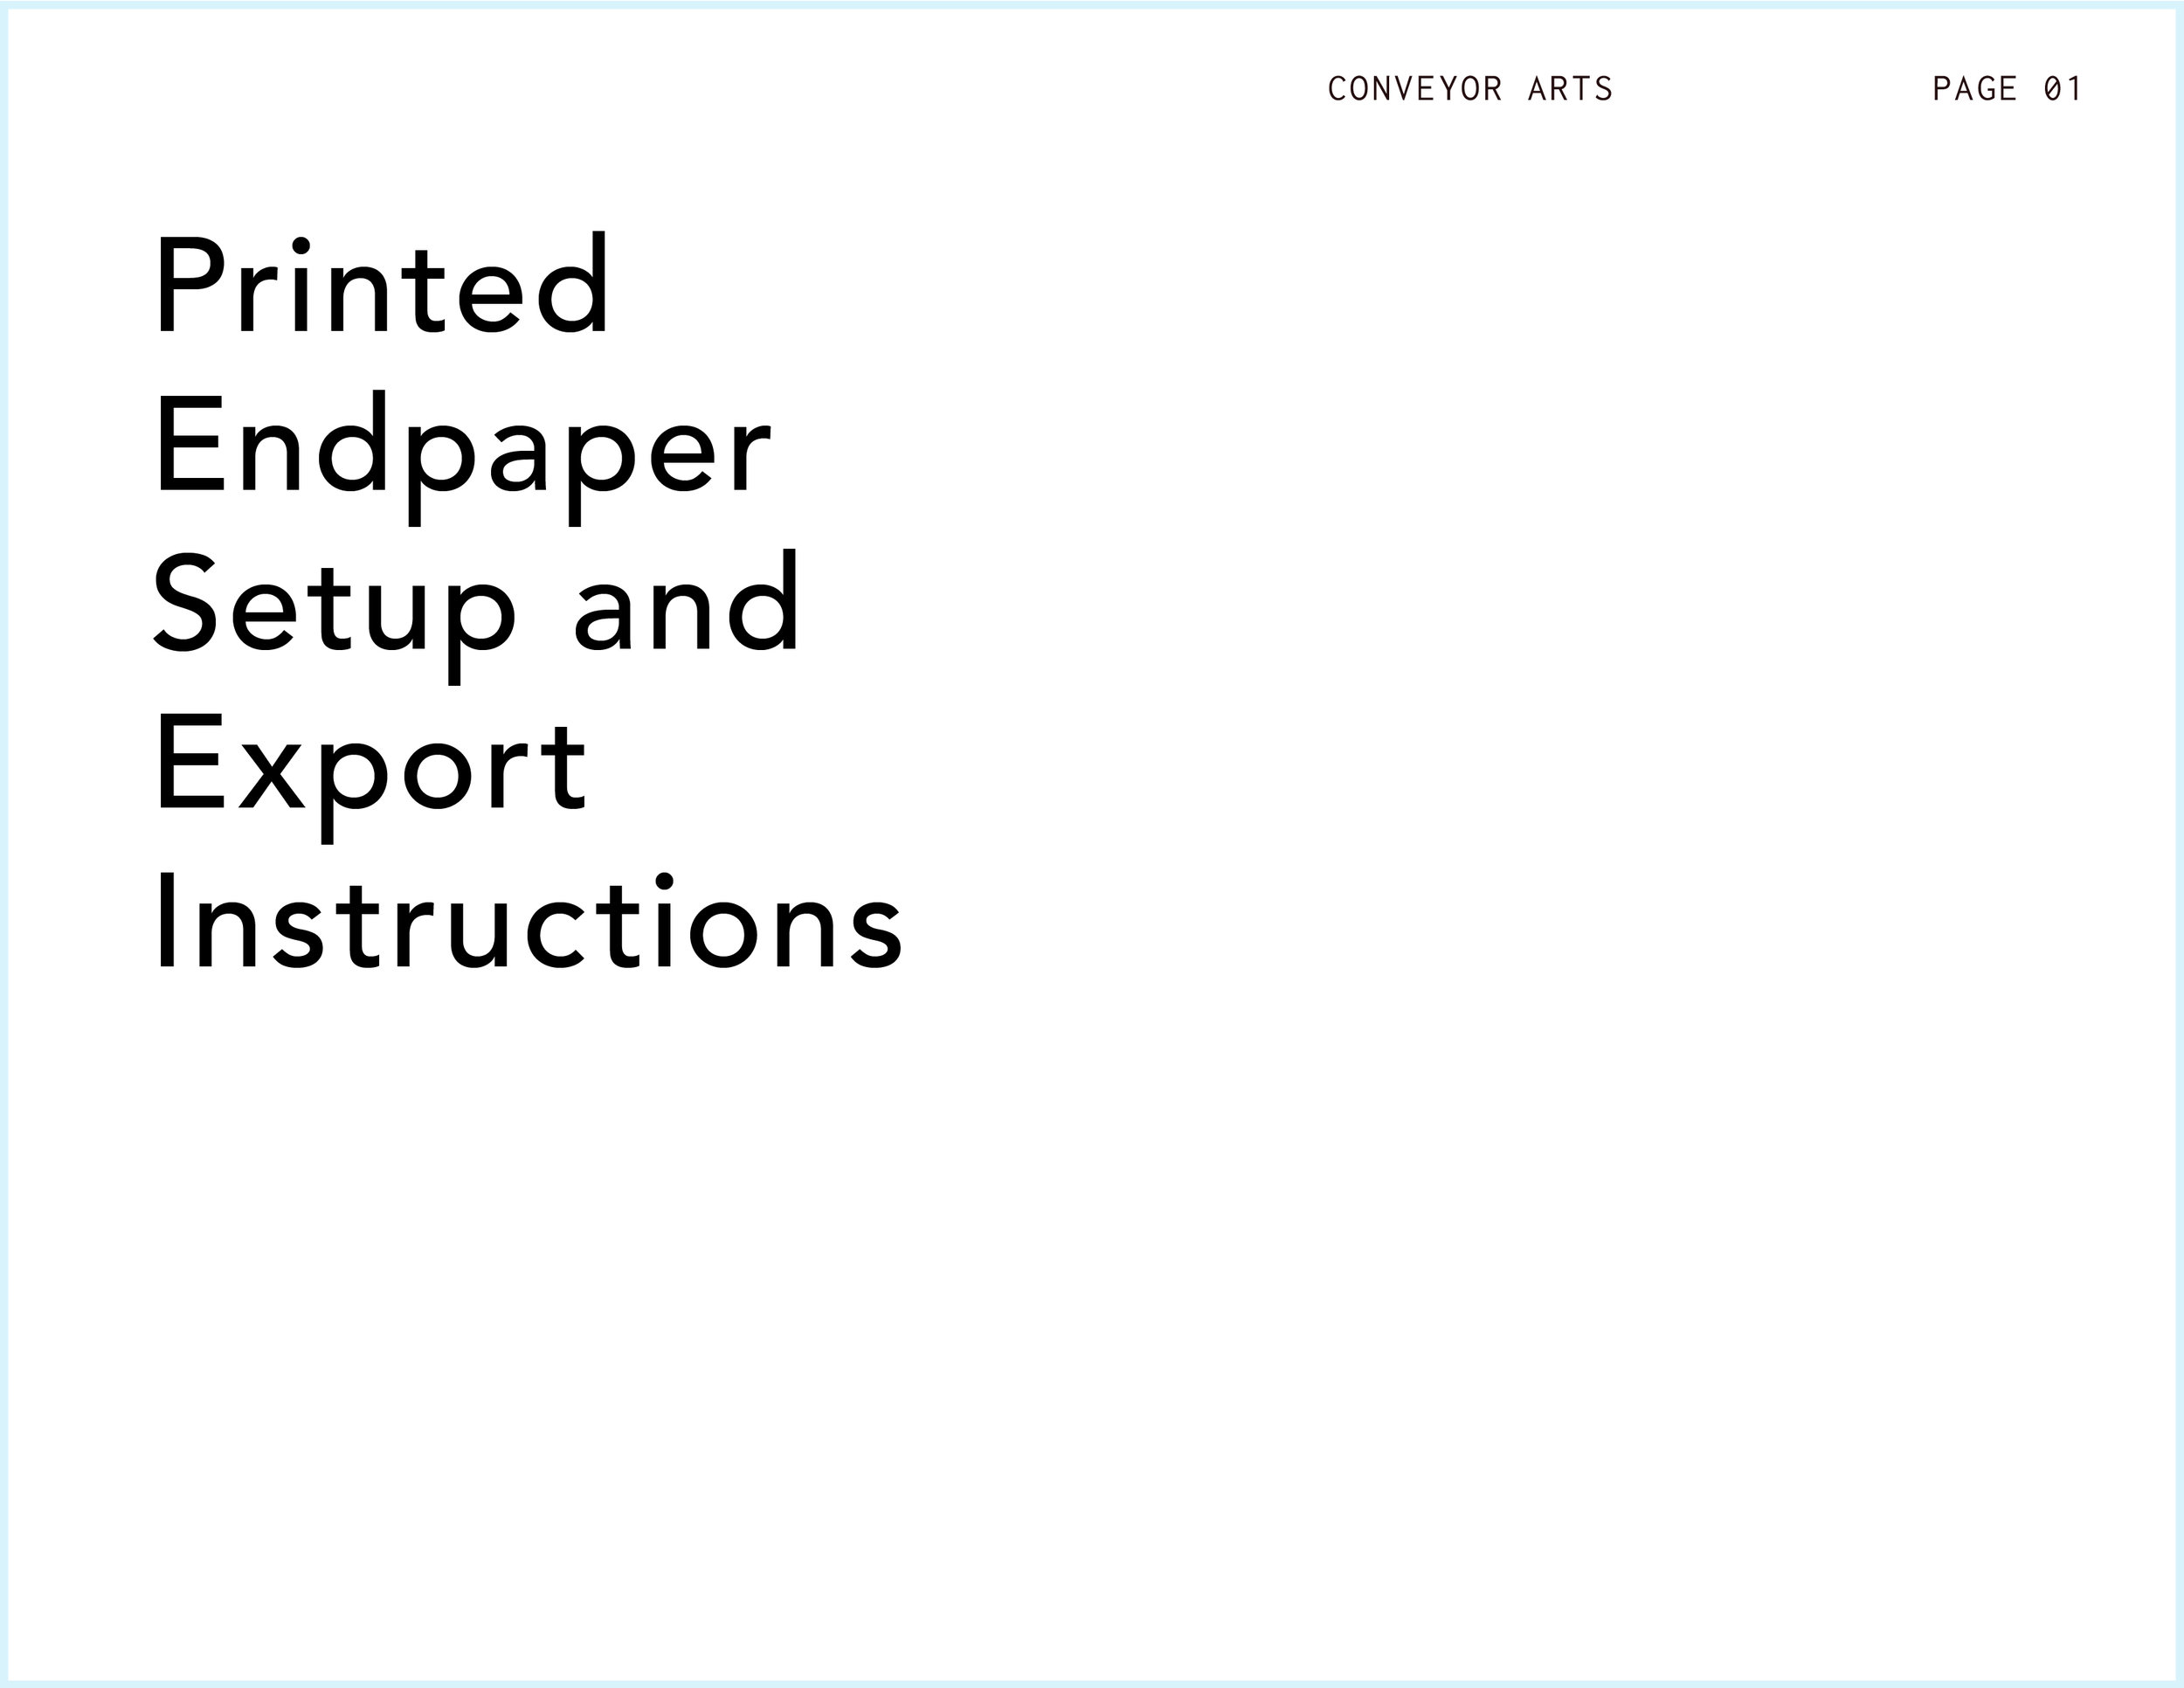 Conveyor Arts Endpaper Setup_Instructions_01.jpg